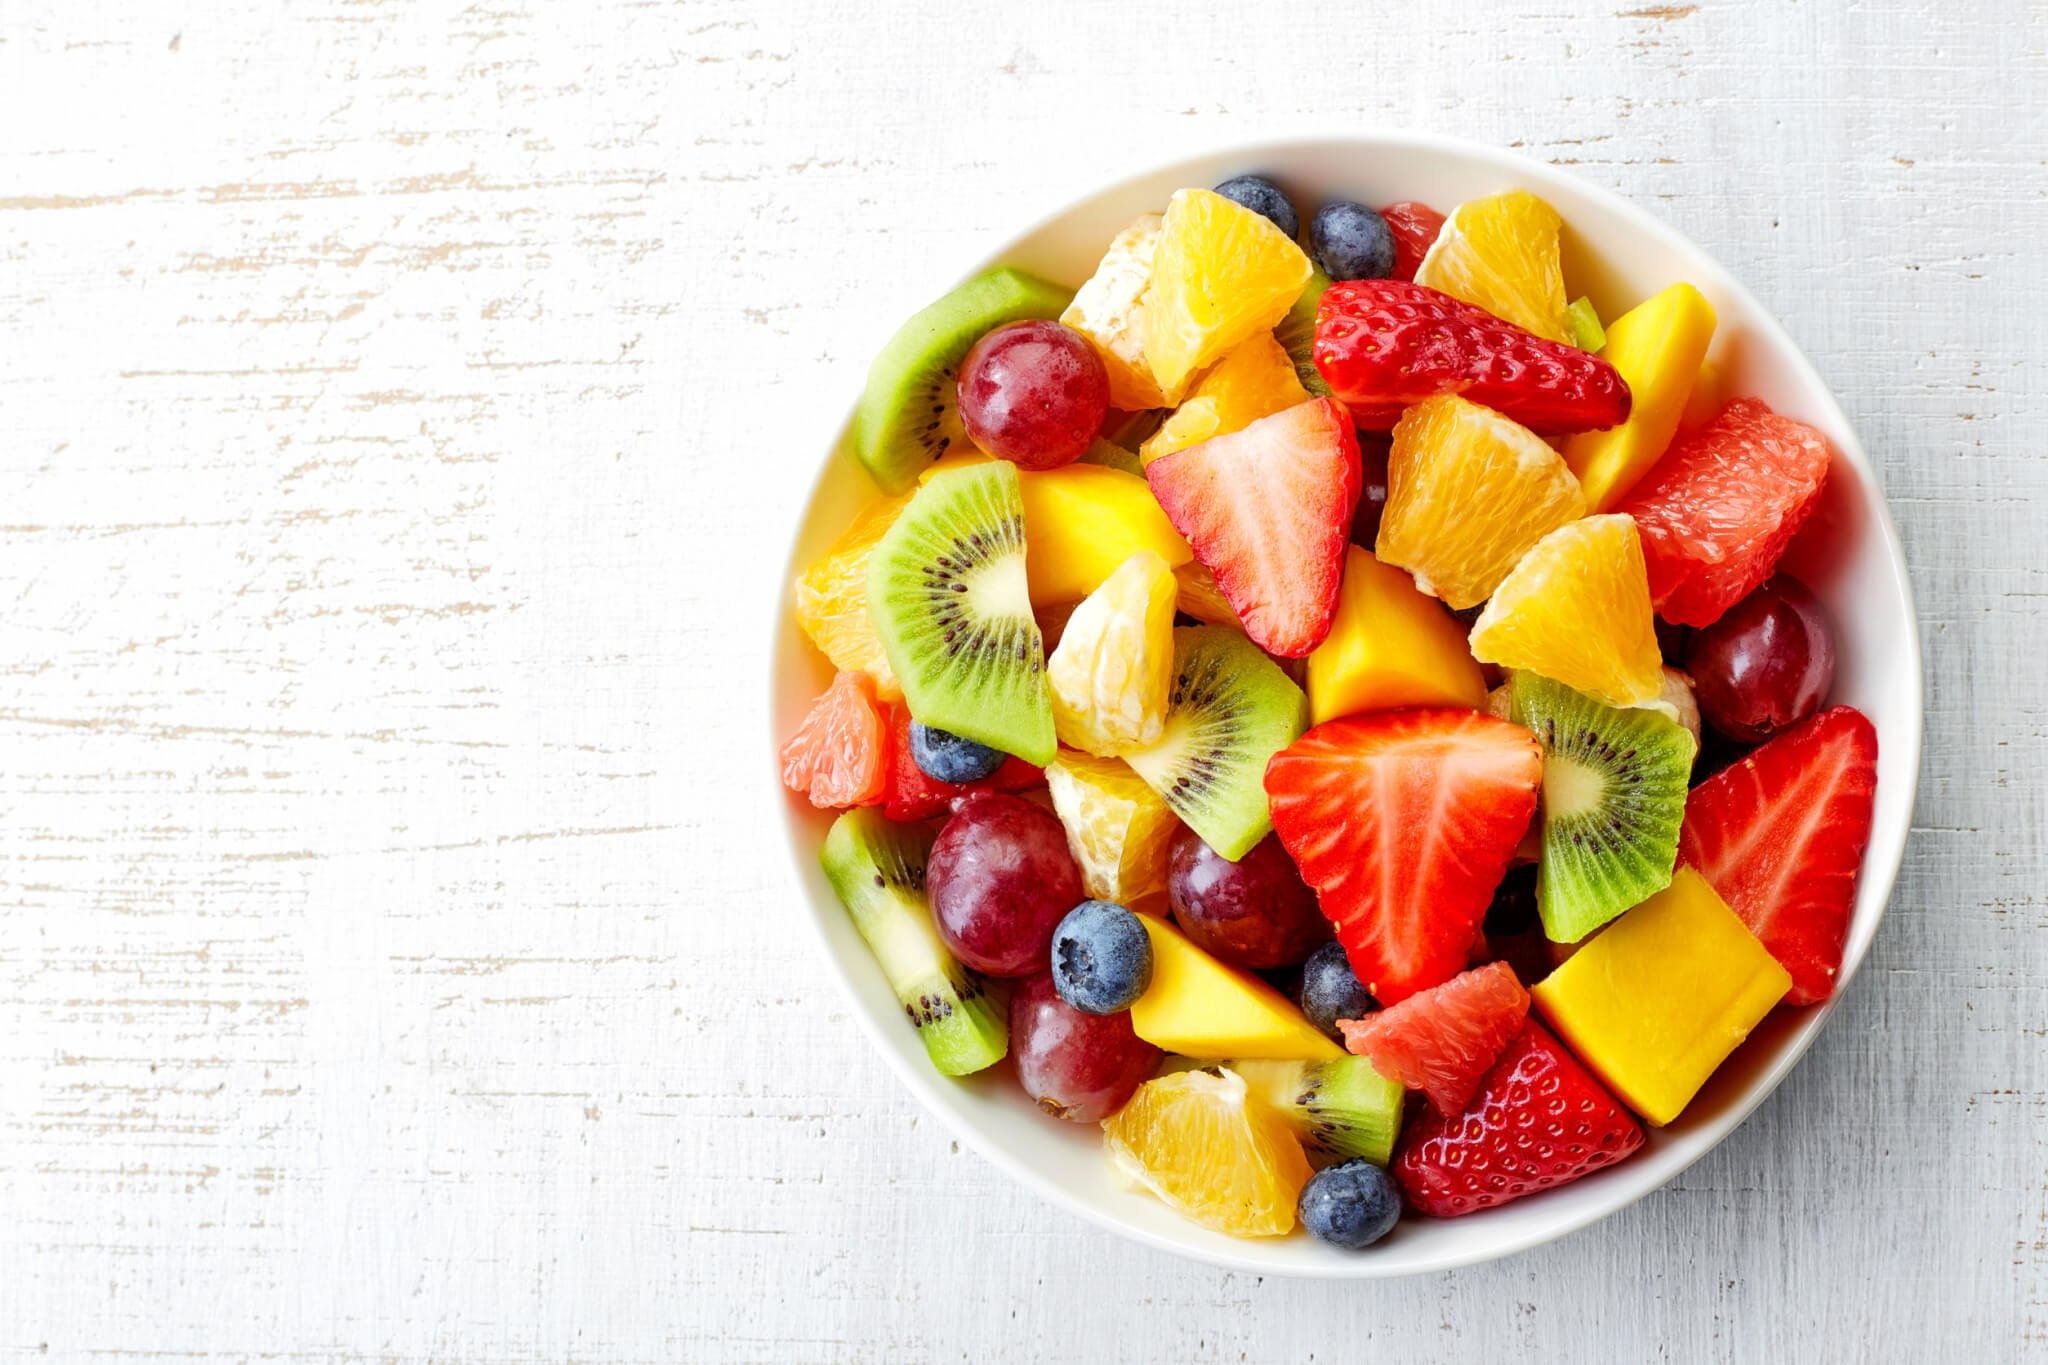 Fruits in Season | Gundry MD